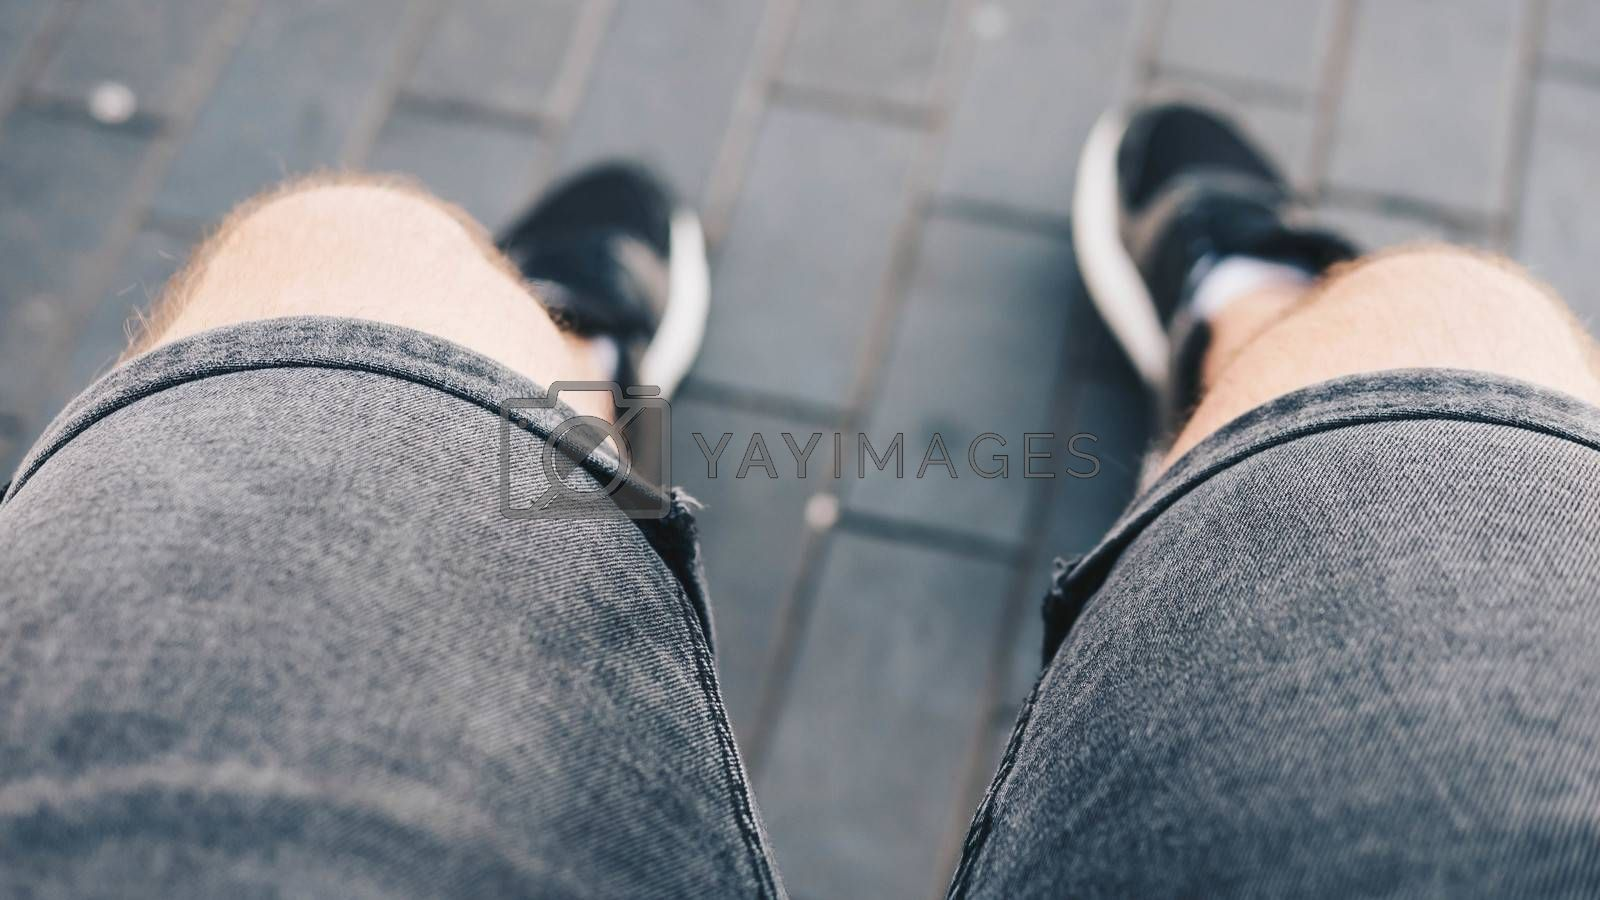 Royalty free image of Male legs in sneakers with blurred background,close-up of the legs of a sitting man. by Andriii_Klapkoo